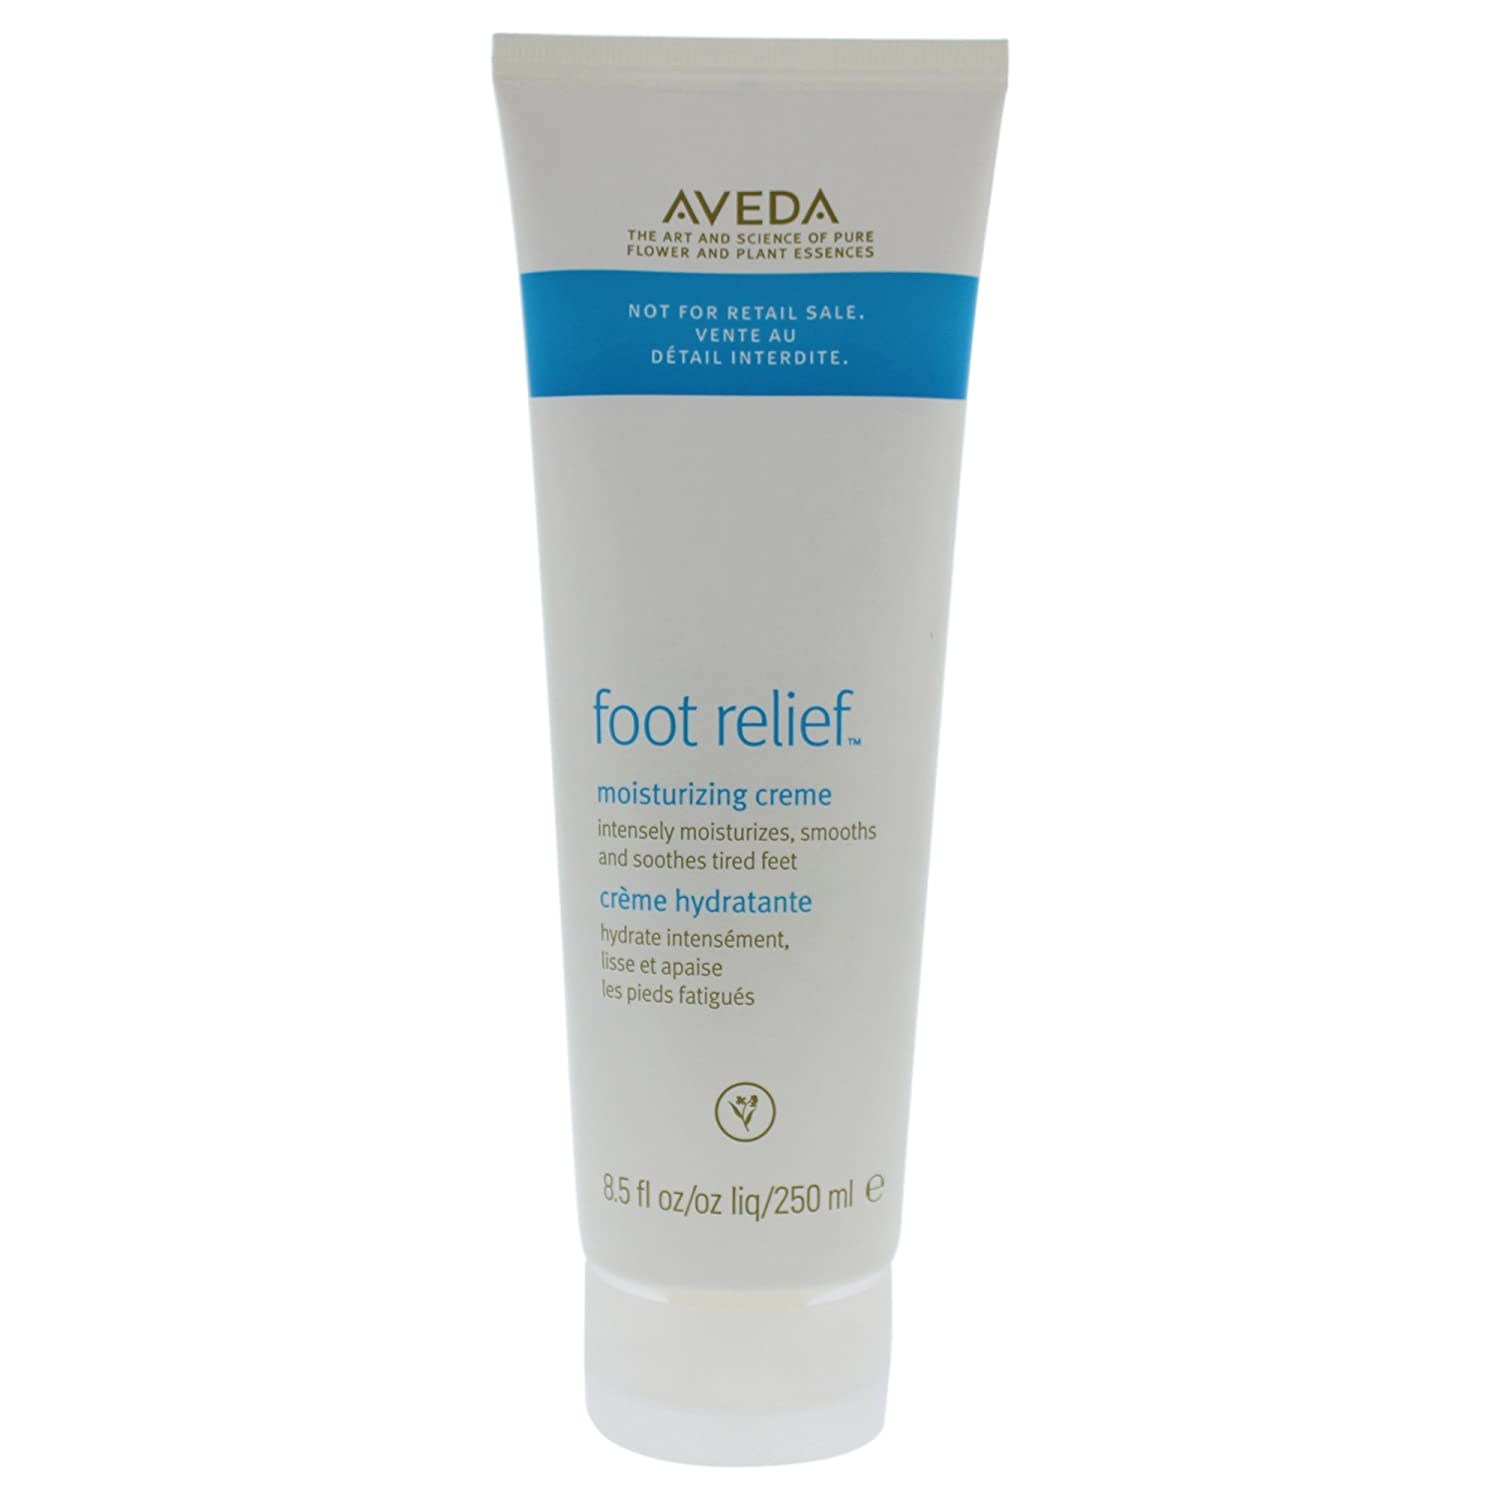 Aveda Foot Relief Moisturizing Creme 8.5oz Softens and Smoothes Calluses and Dry Patches